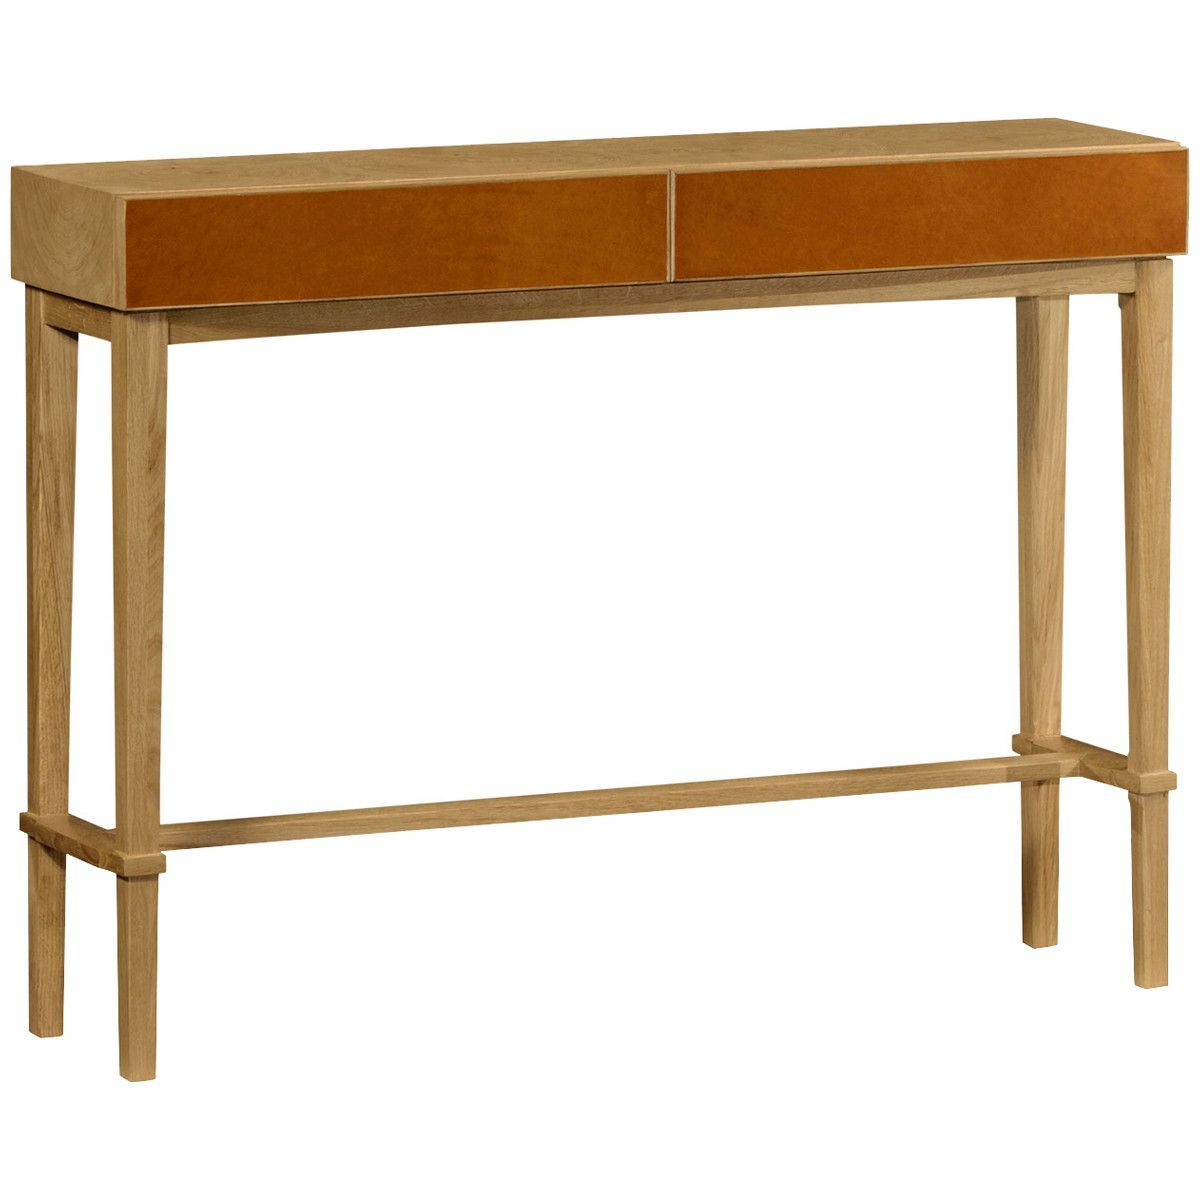 Jonathan Charles Architectural Console Table With Drawers In Leather